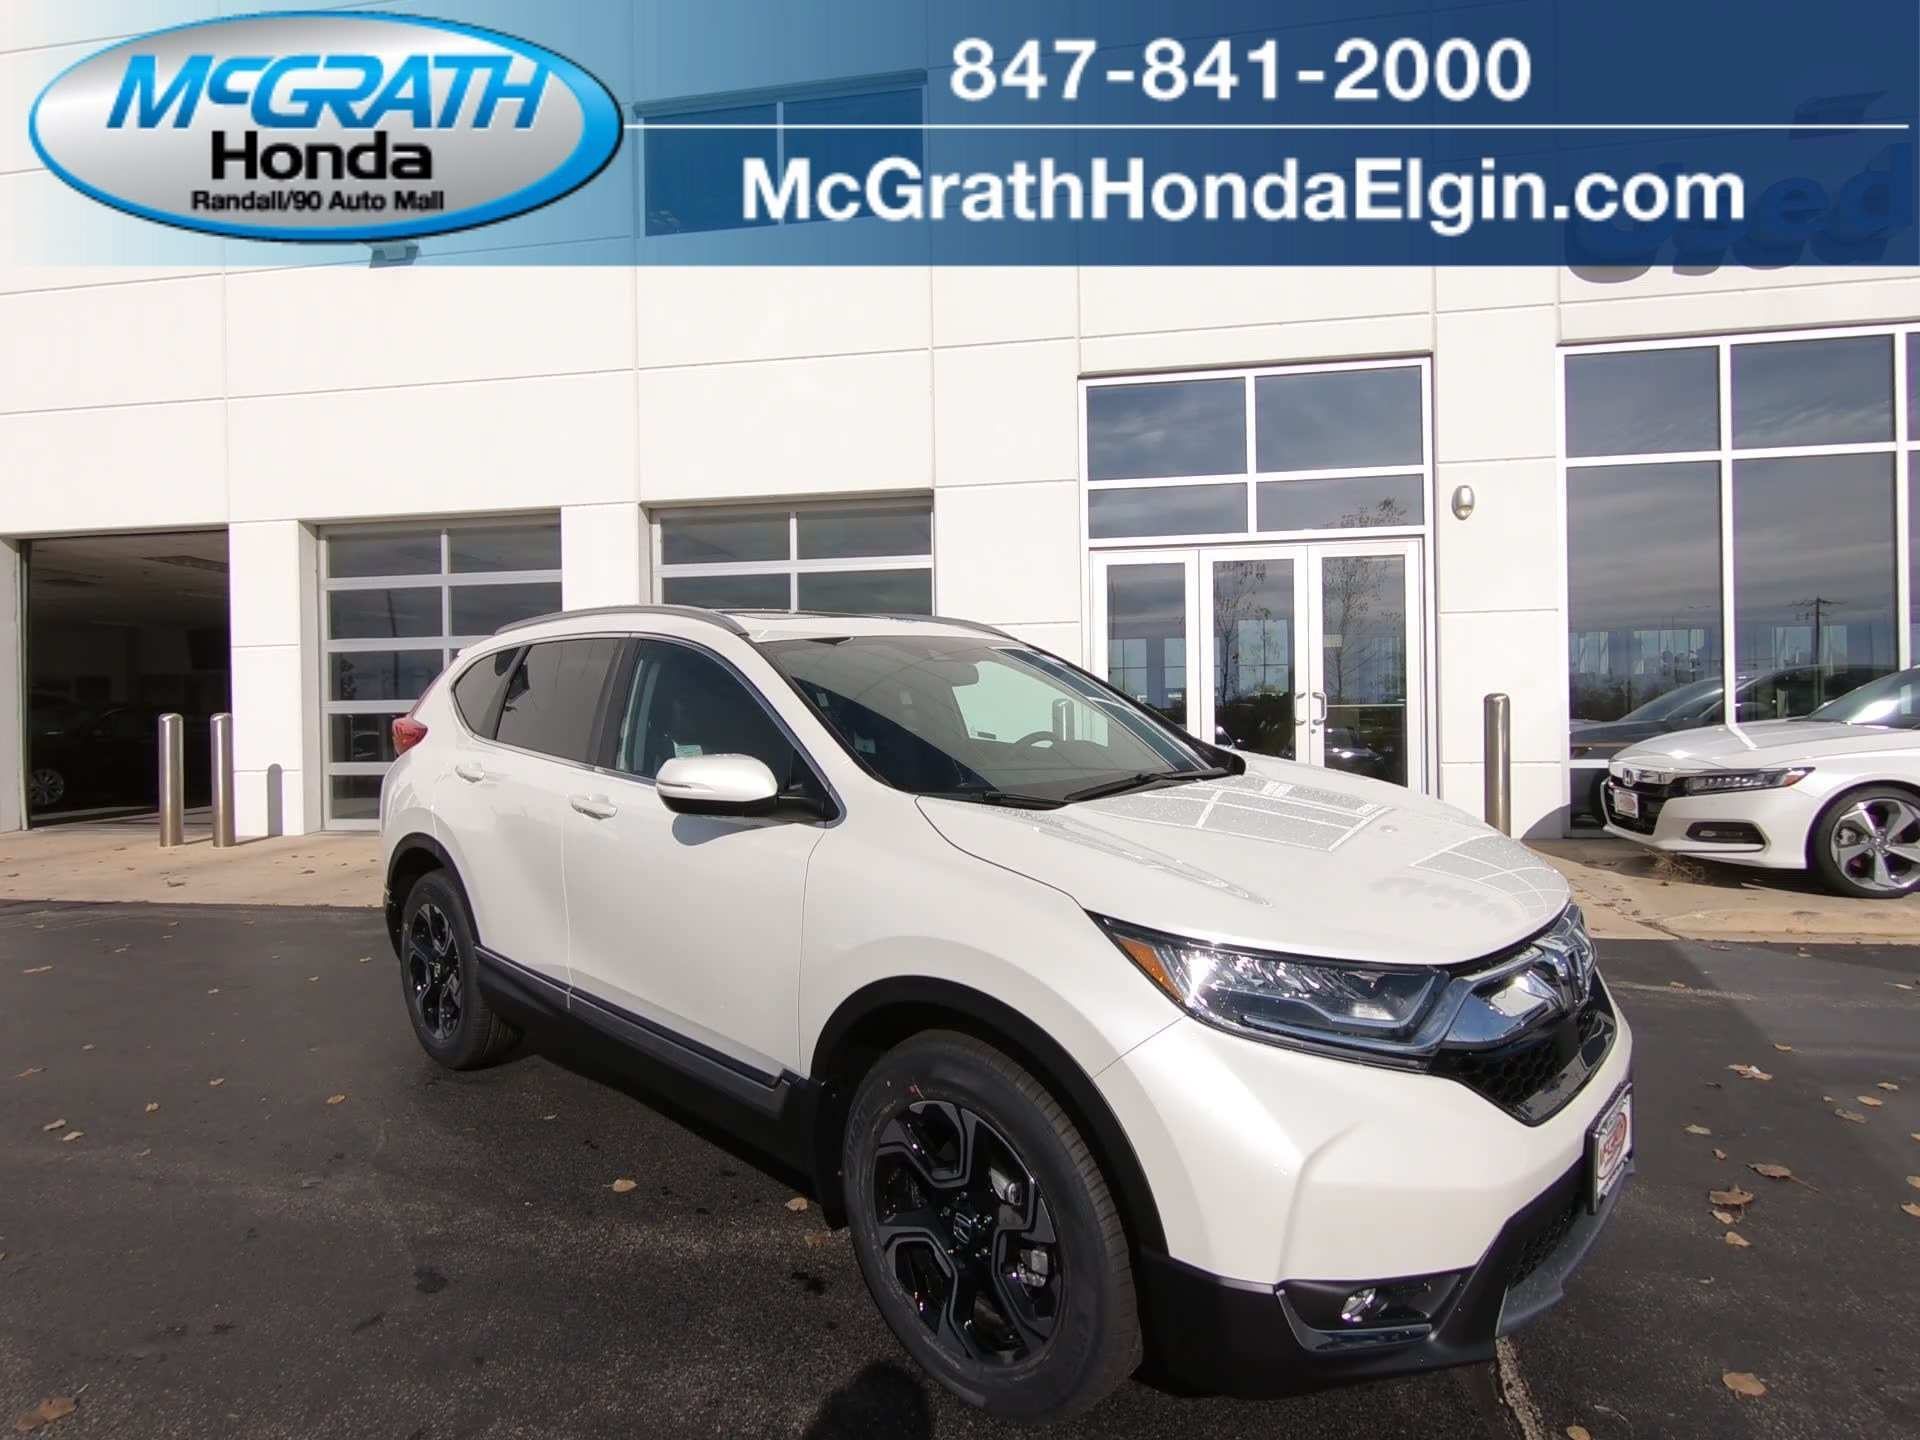 54 The Best Mcgrath Honda 2020 N Randall Rd Research New